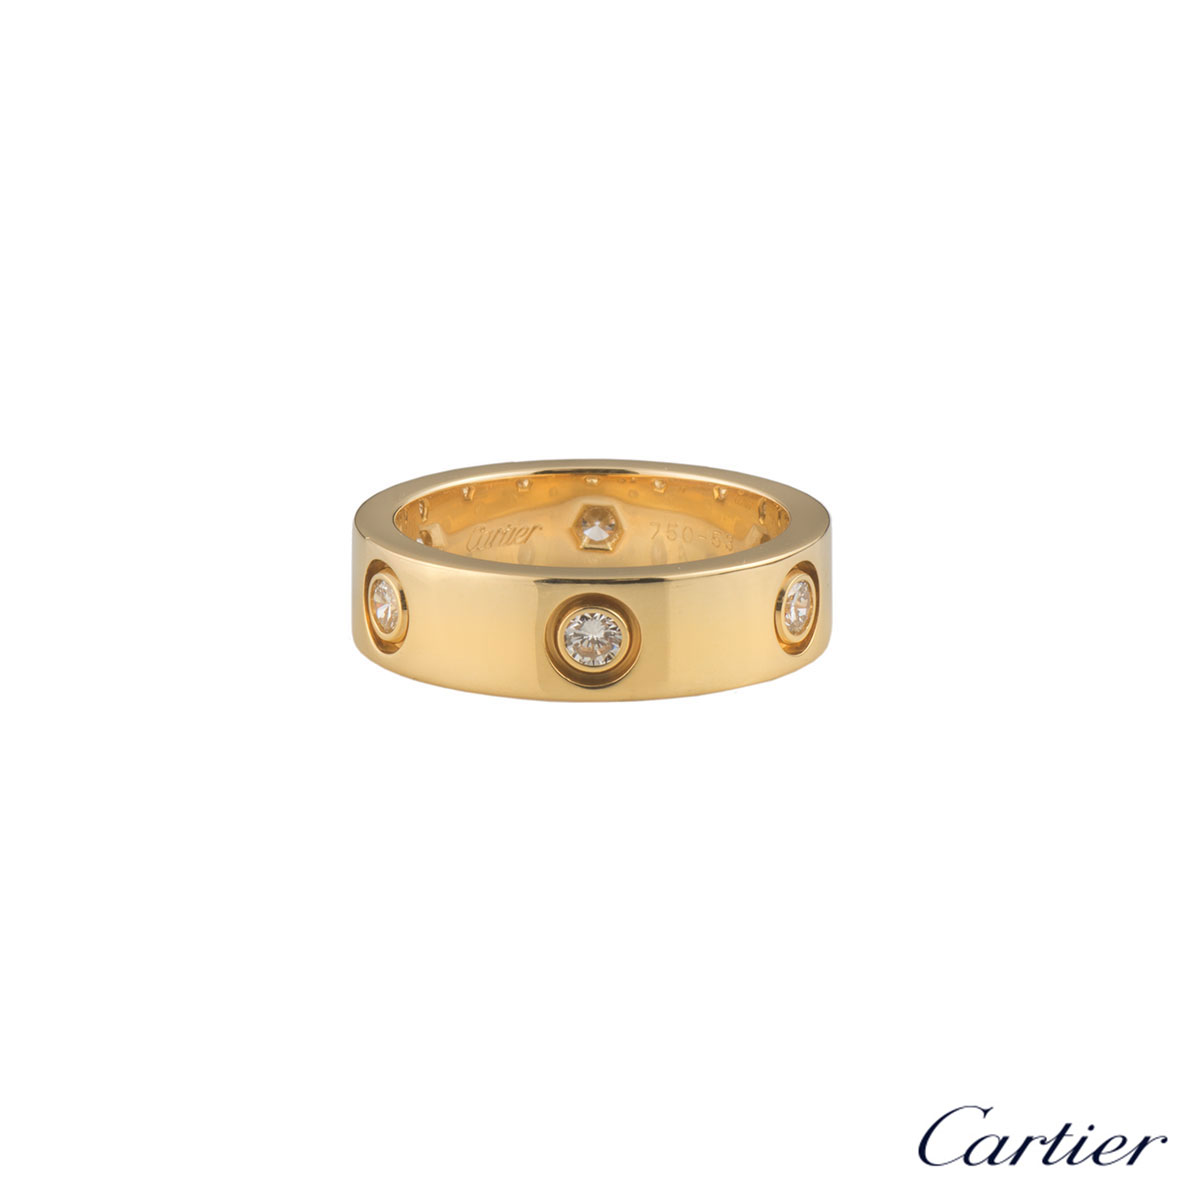 Cartier Yellow Gold Full Diamond Love Ring Size 53 B4025953